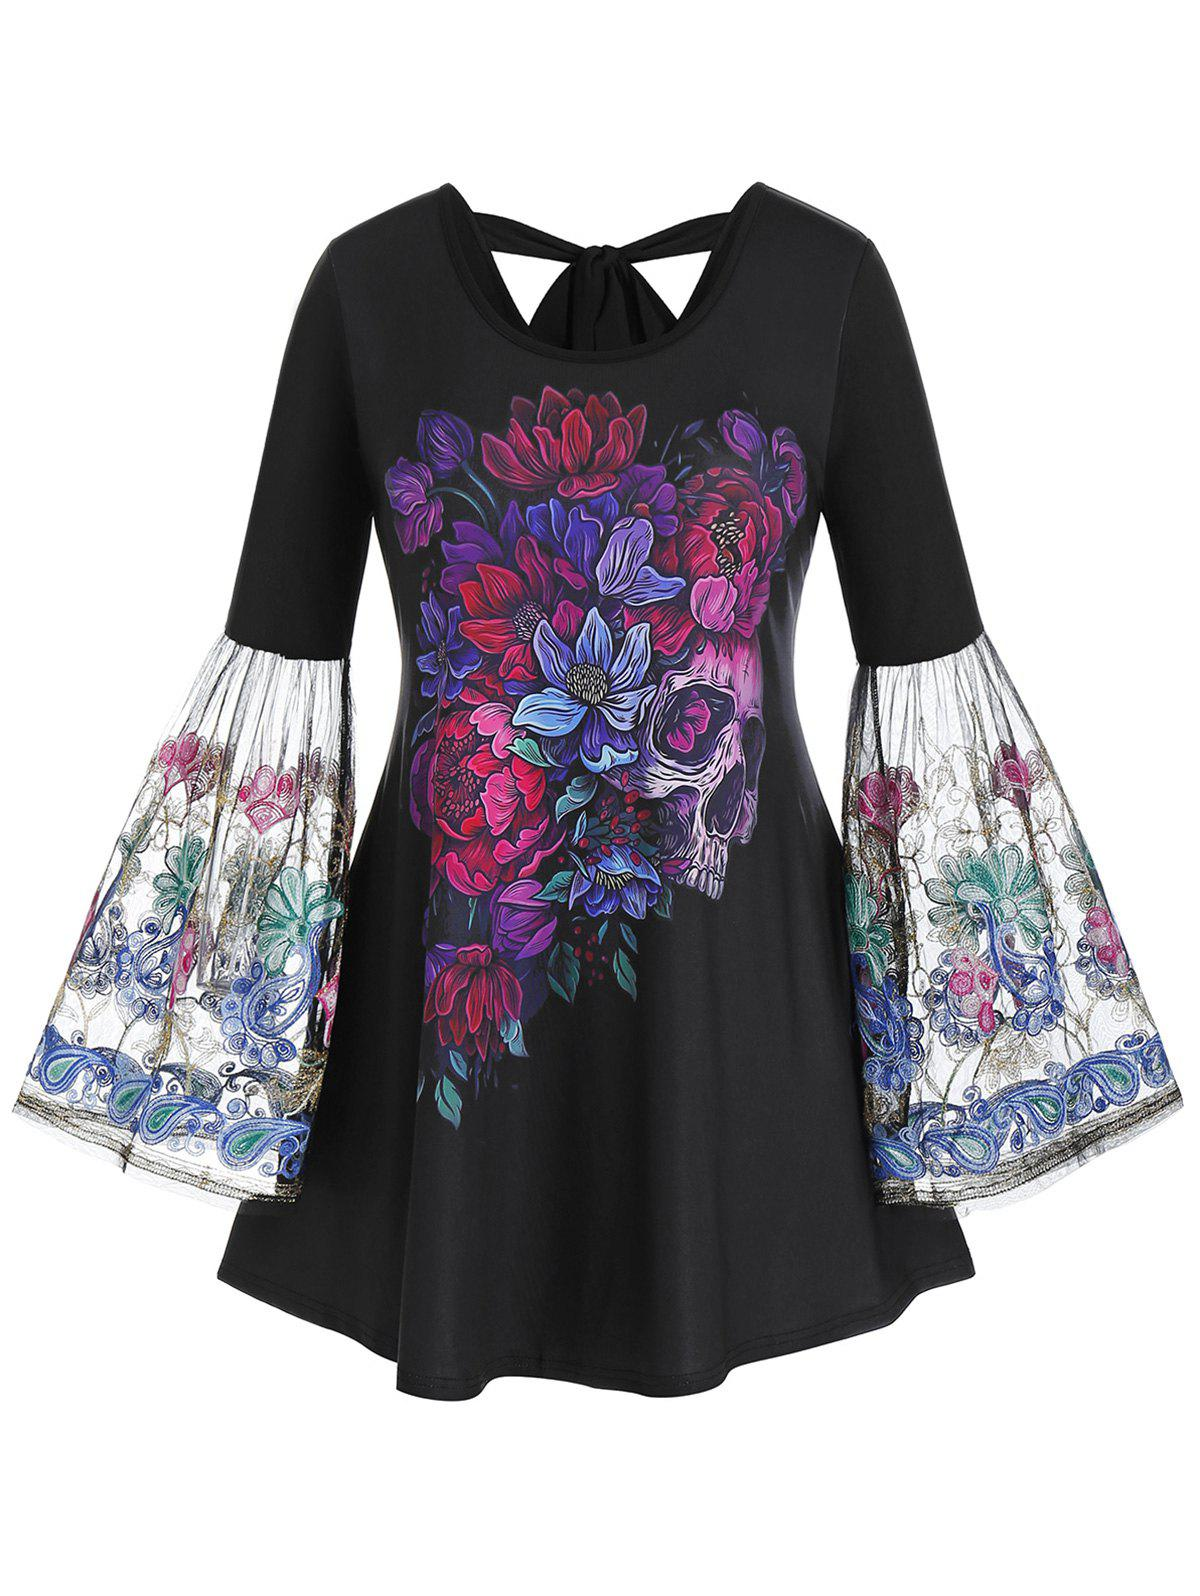 Plus Size Flower Skull Golden Embroidered Bell Sleeve Tee - BLACK 4X